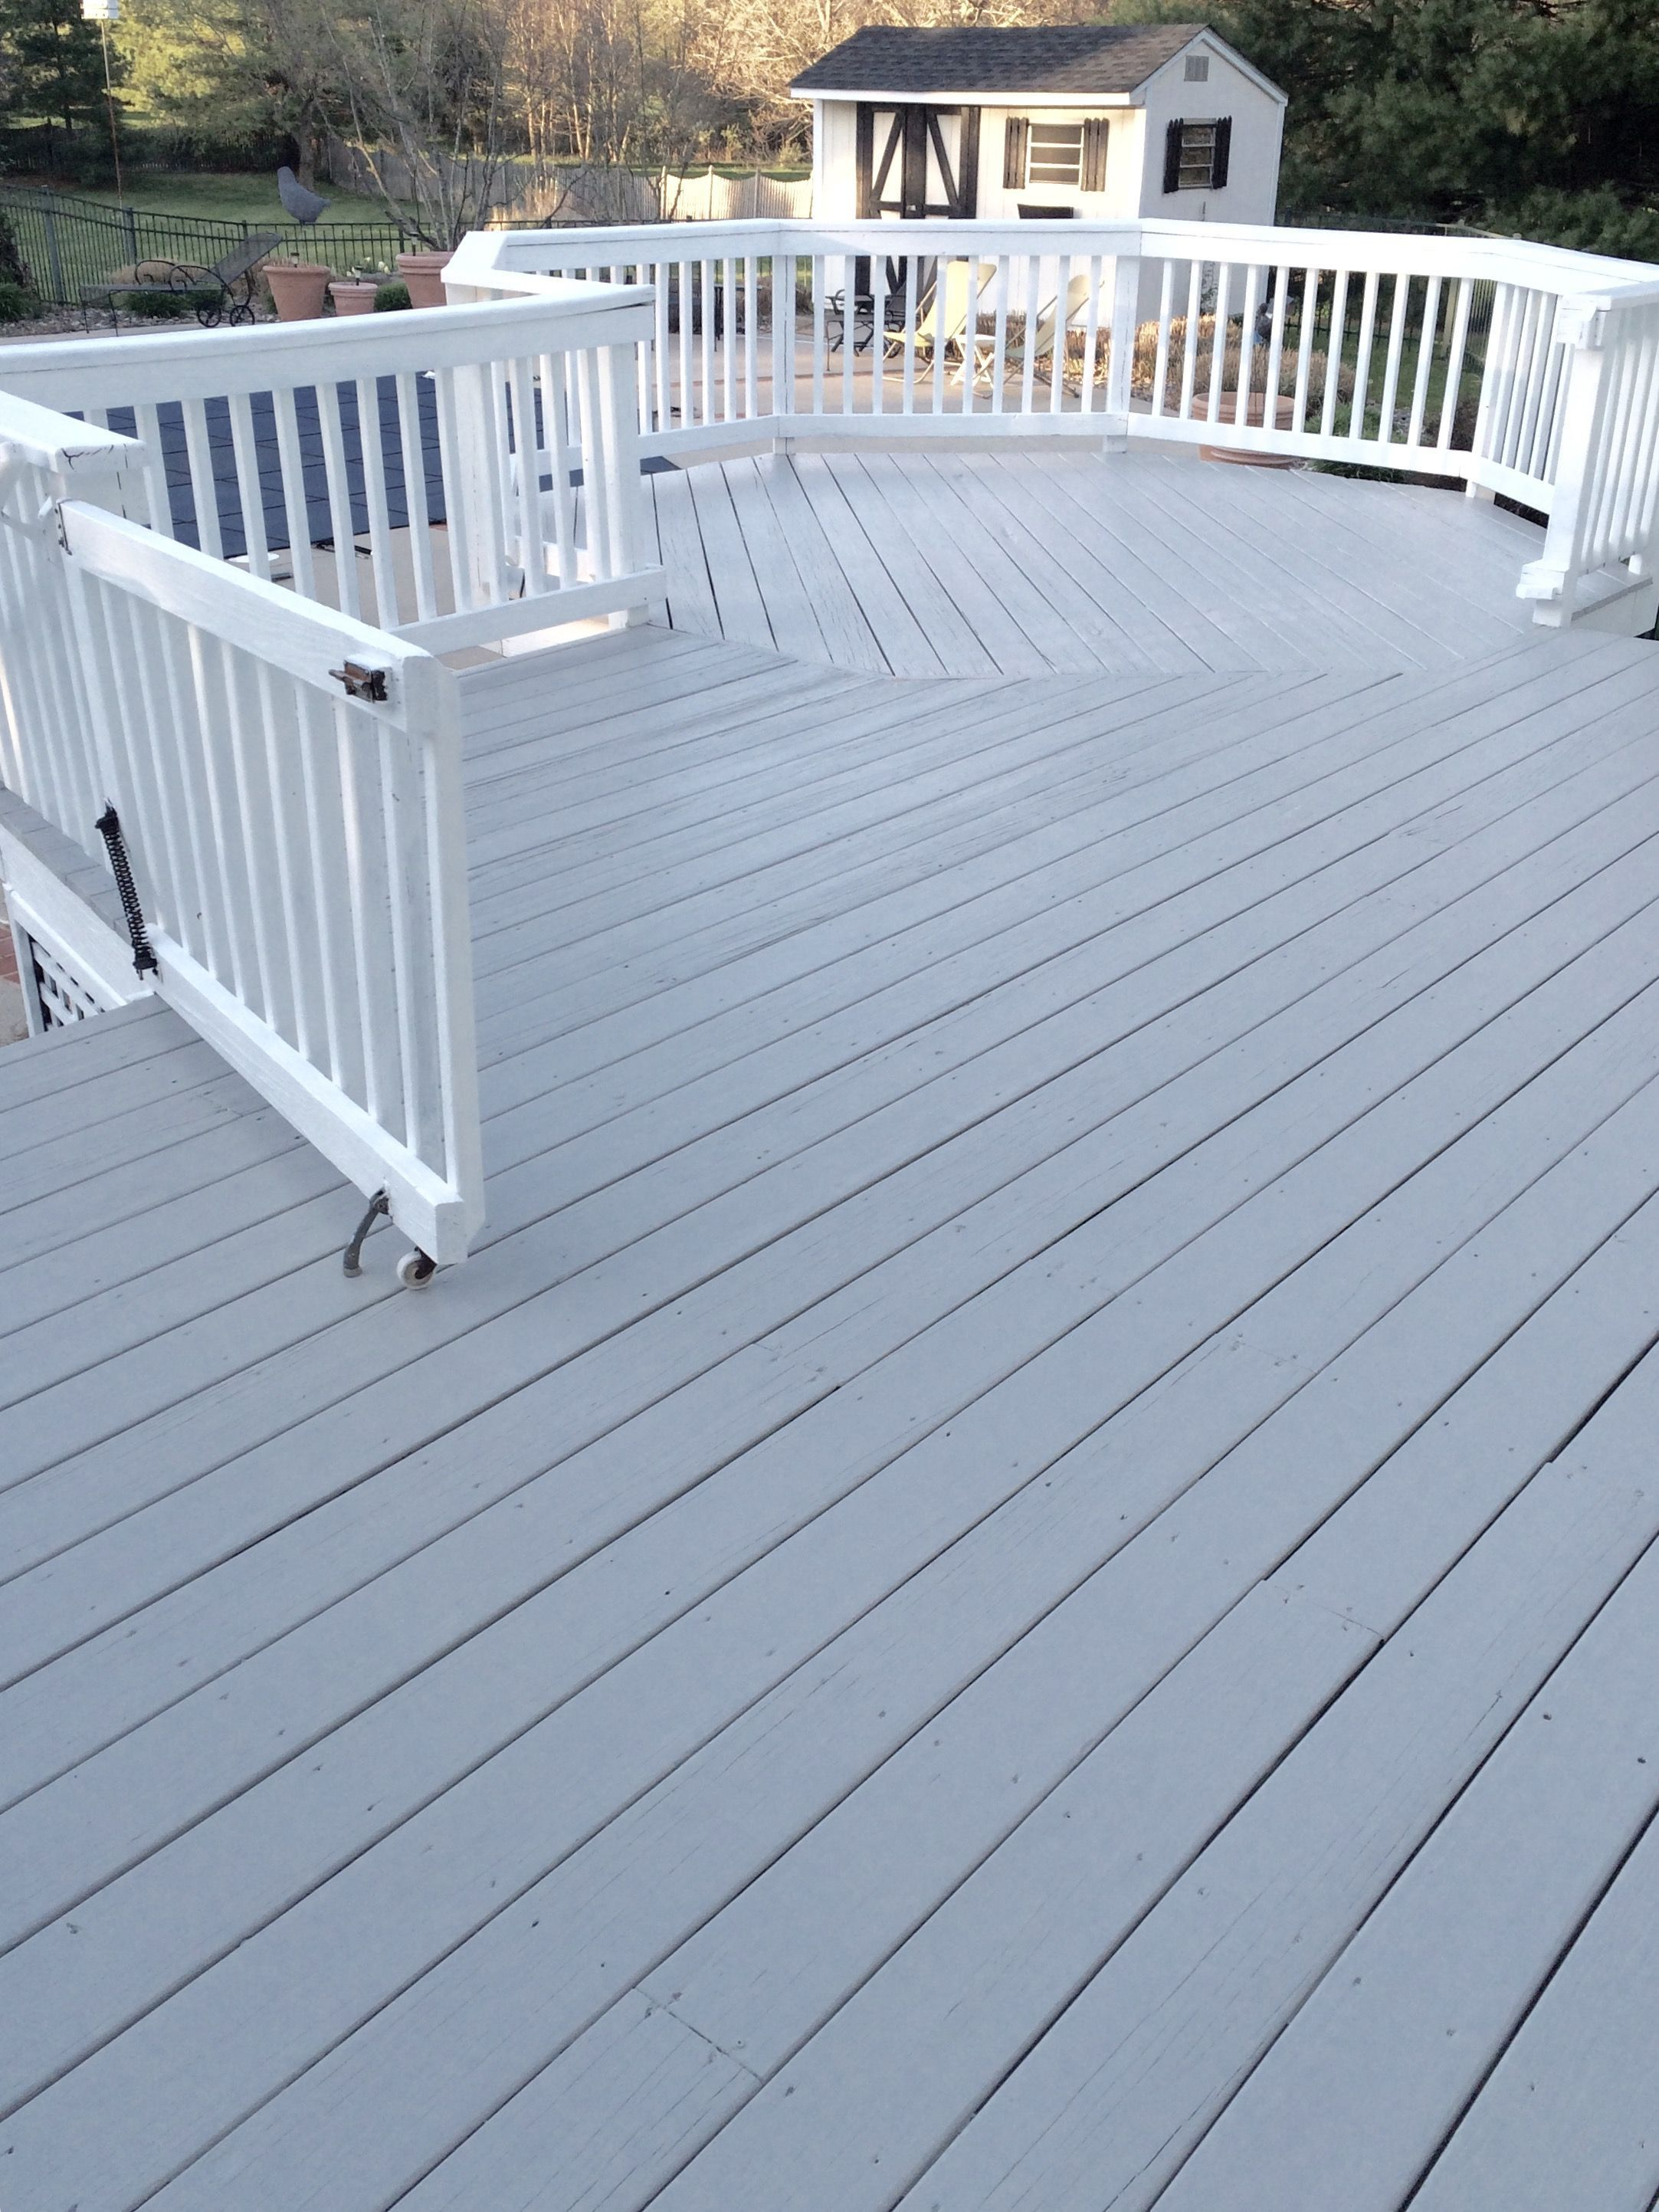 22 Luxury Grey Deck Paint Trends You Ll See In 2020 Home Inspiration And Home Decor Ideas Deck Paint Deck Paint Colors Grey Deck Paint